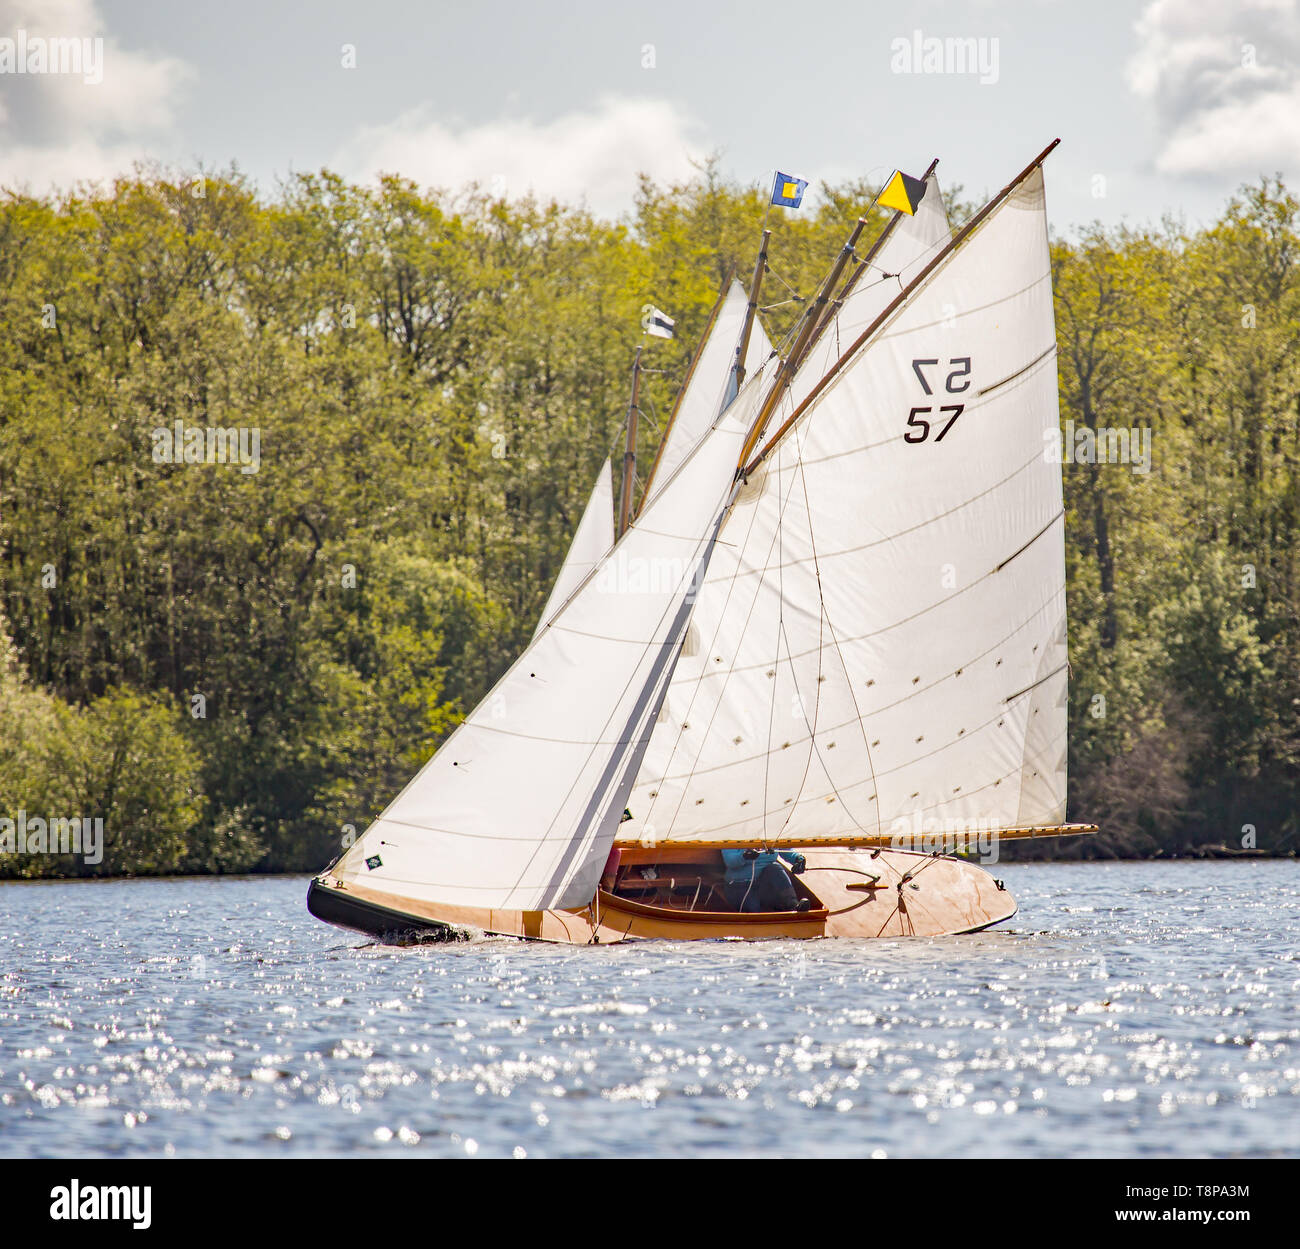 Keel Over Stock Photos & Keel Over Stock Images - Alamy